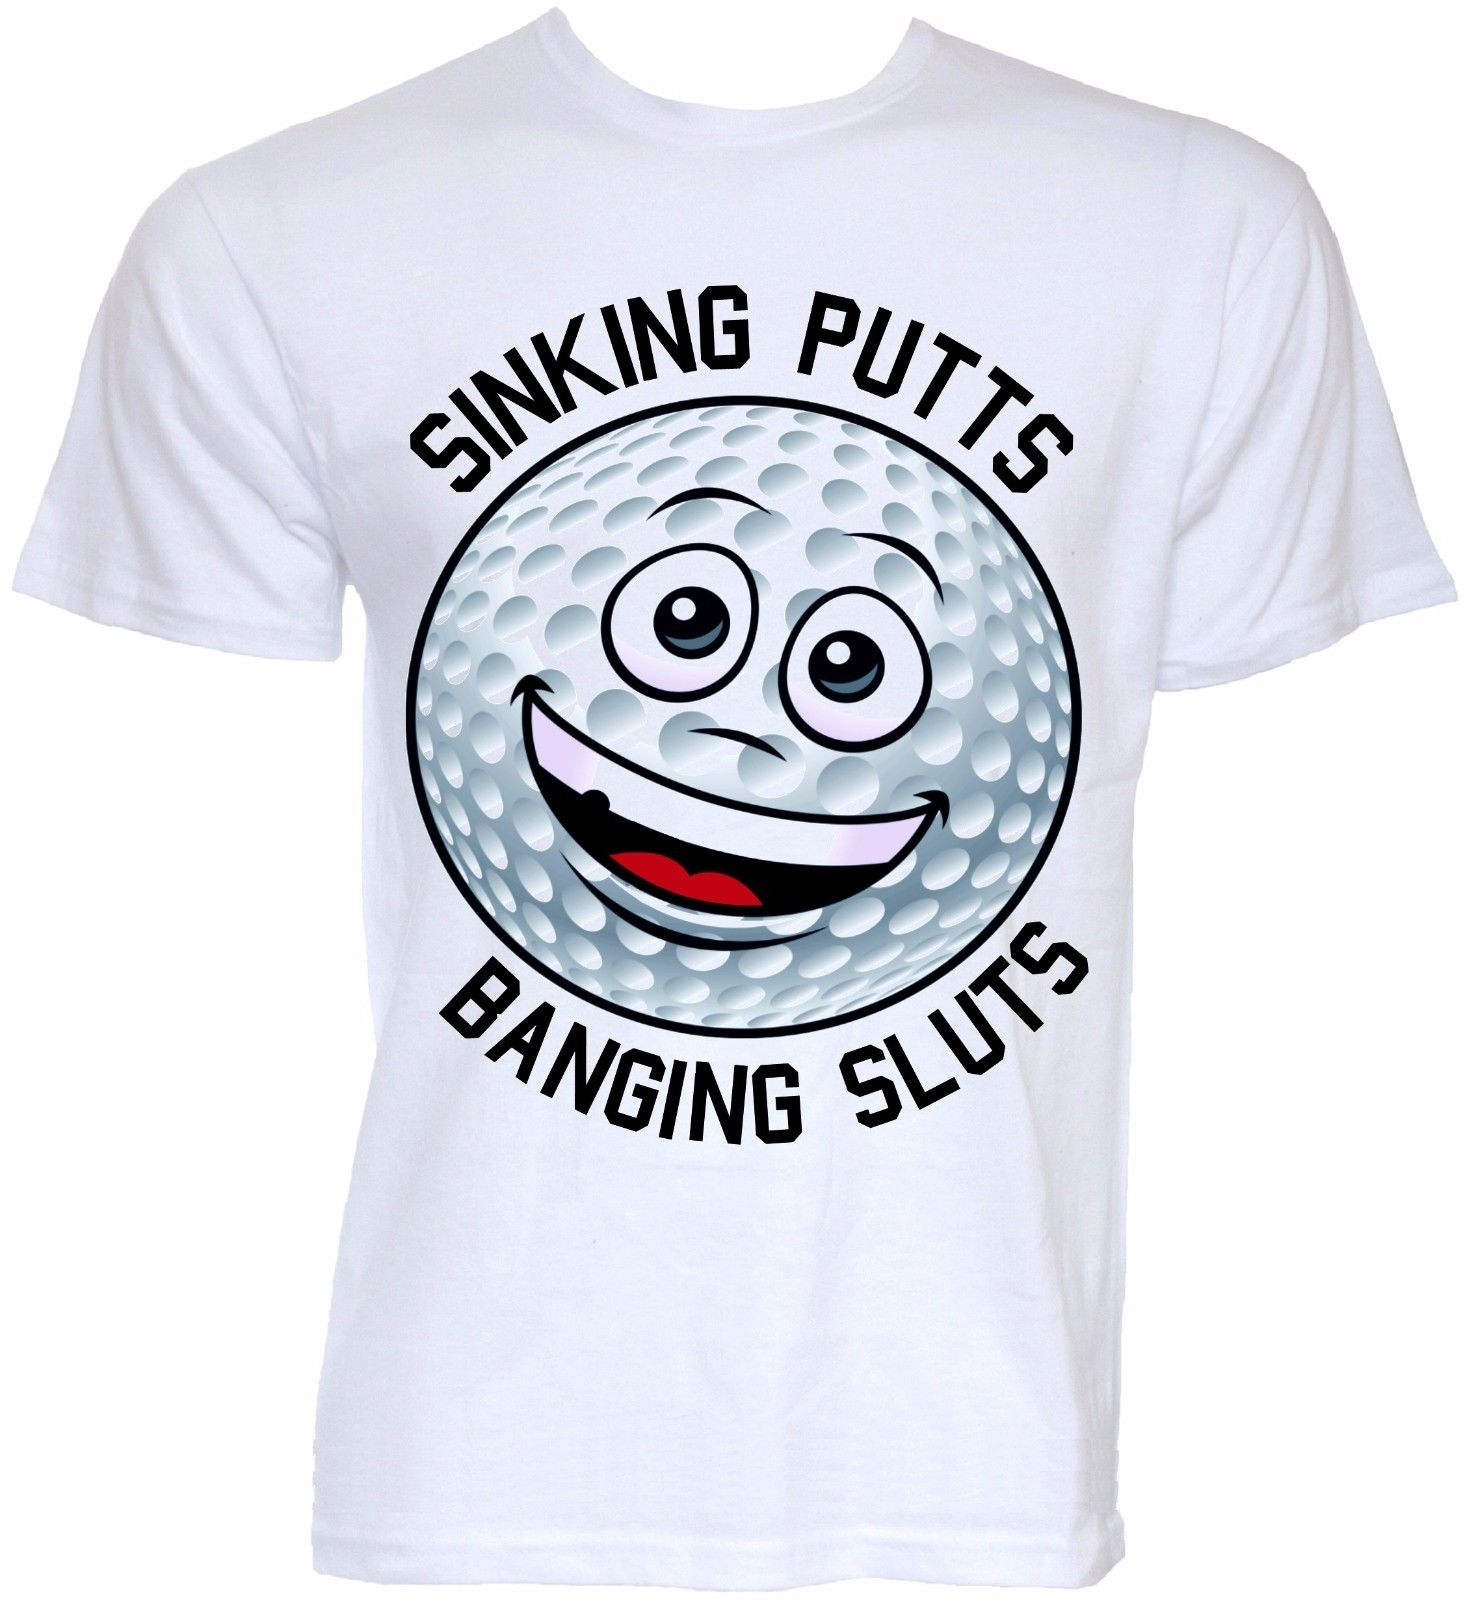 MENS FUNNY COOL NOVELTY GOLFer BALL SLOGAN JOKE RUDE GOLFING T-SHIRTS GIFTS SHIRTS White O Neck Cotton T Shirt Comfortable